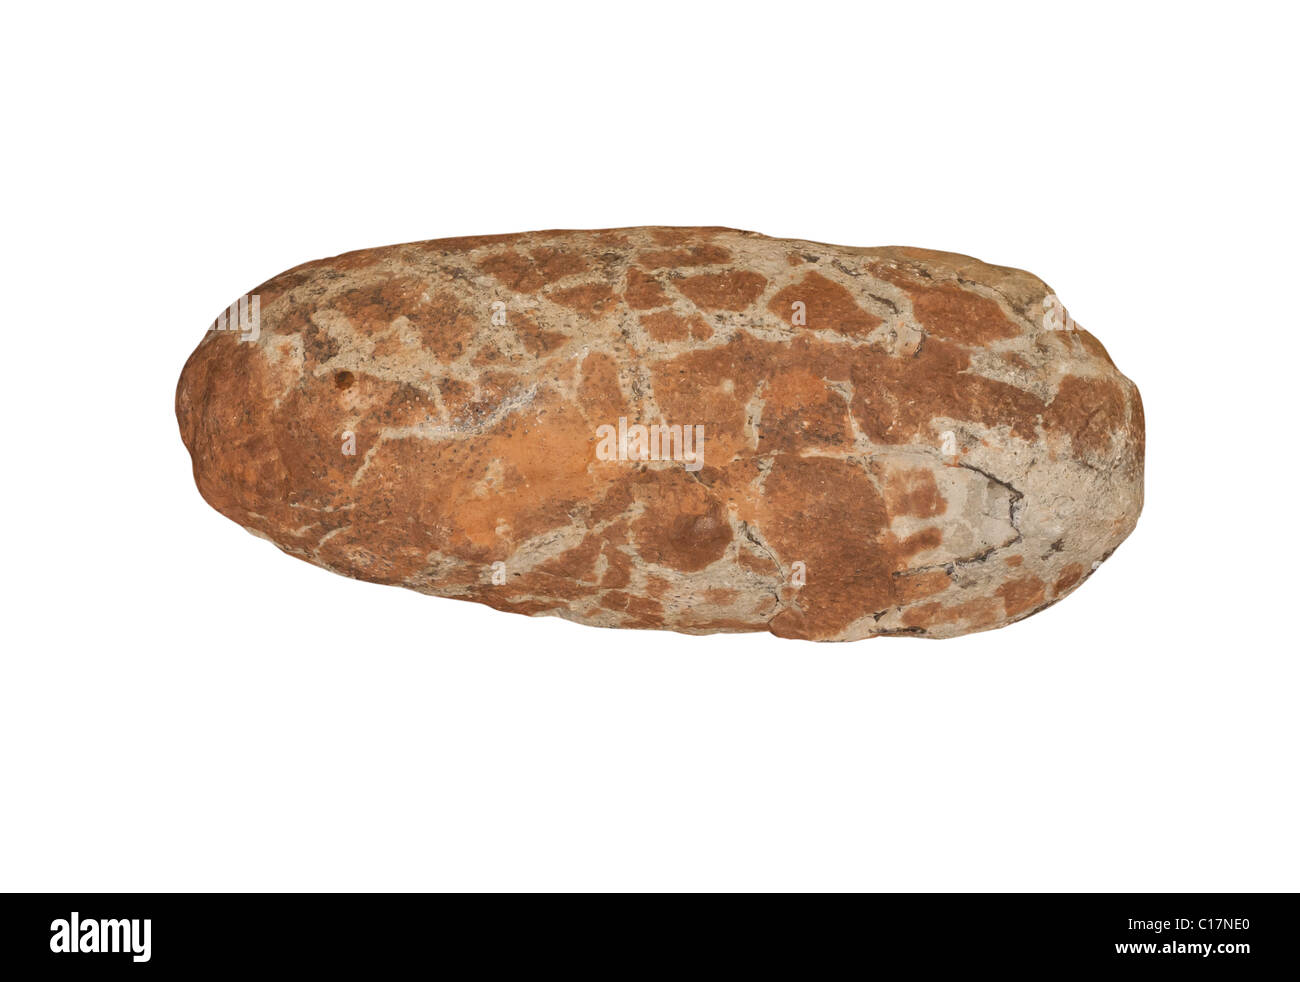 Fossil Dinosaur egg Oviraptor sp. from Cretaceous period Hanan Province China. Length 20 cm. - Stock Image